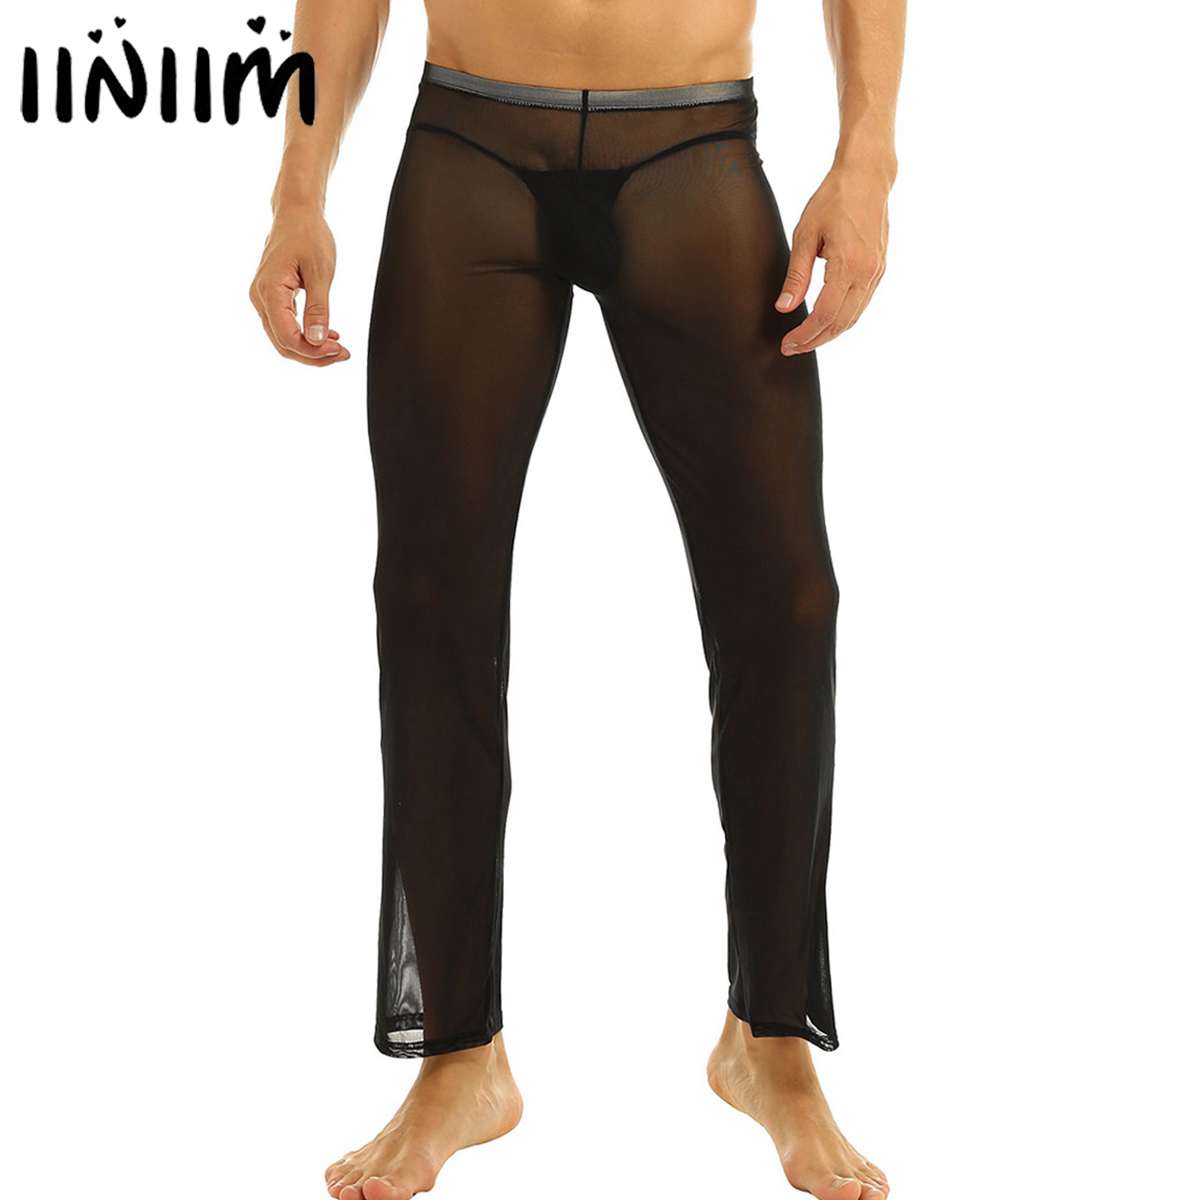 Iiniim Hot Brand Mens Comfortable Mesh Underwear Under Pants See-through Breathable Pants For Evening Sleepwear Sexy Clubwear